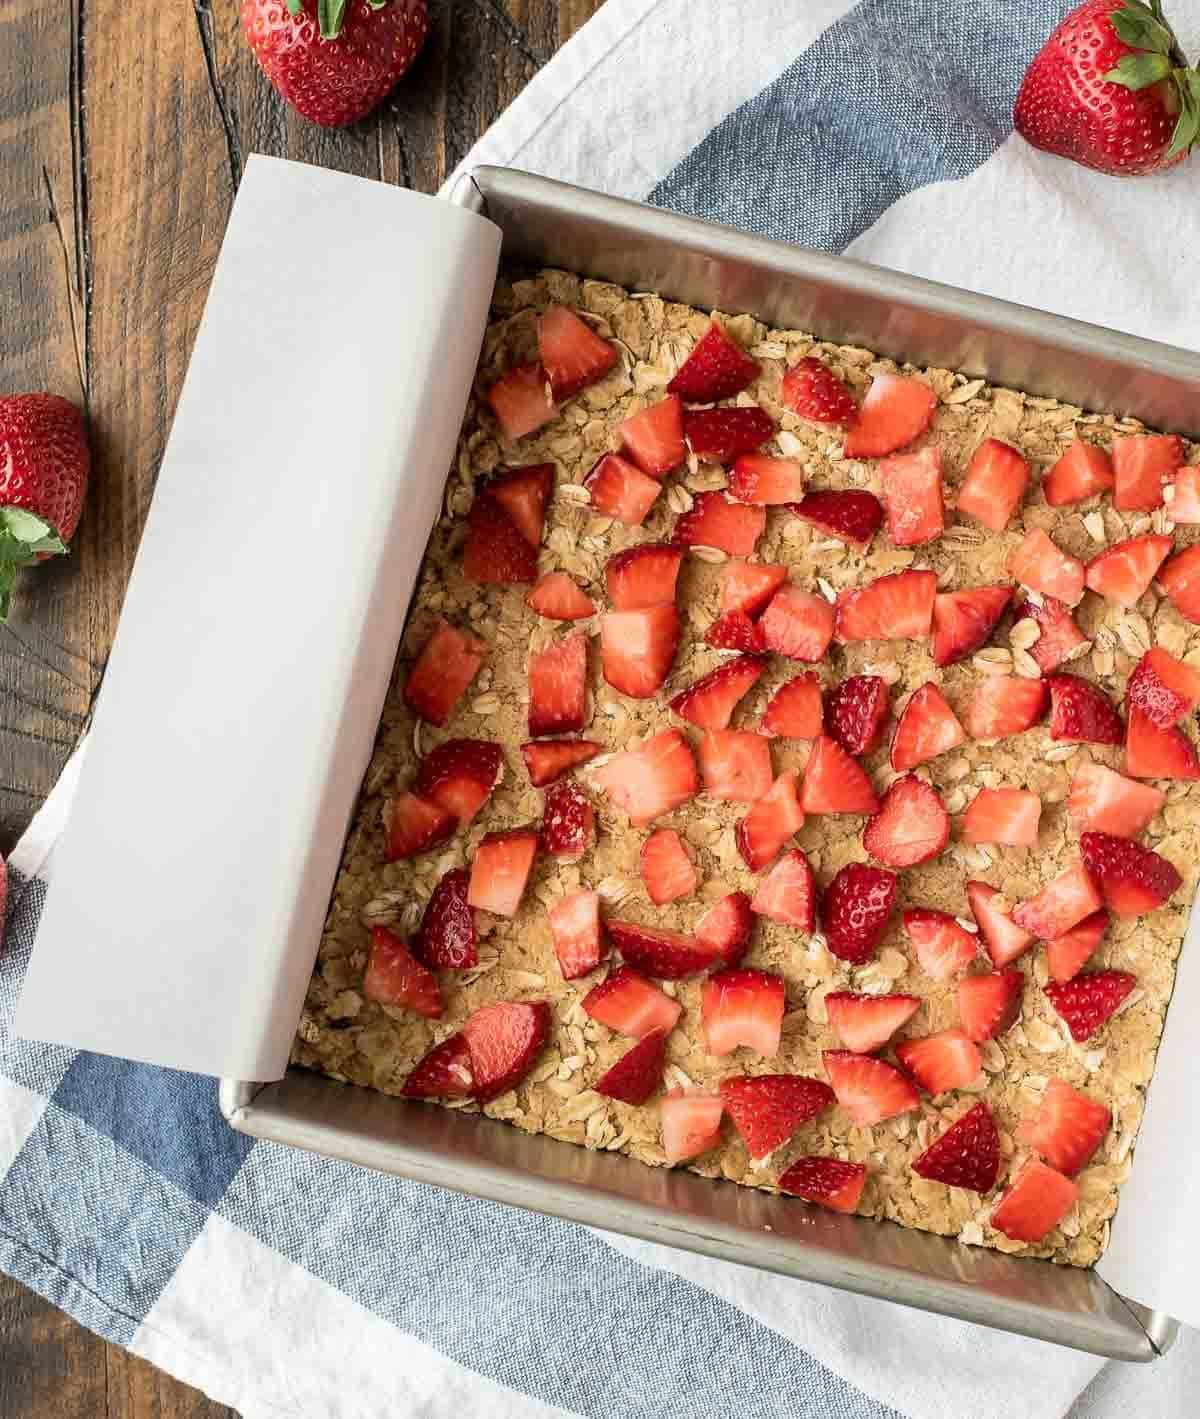 These Fresh Strawberry Oatmeal Bars couldn't be easier or more delicious! With a buttery crumb topping, sweet strawberry filling, and warm vanilla glaze, they are perfect for a snack or potluck. @wellplated